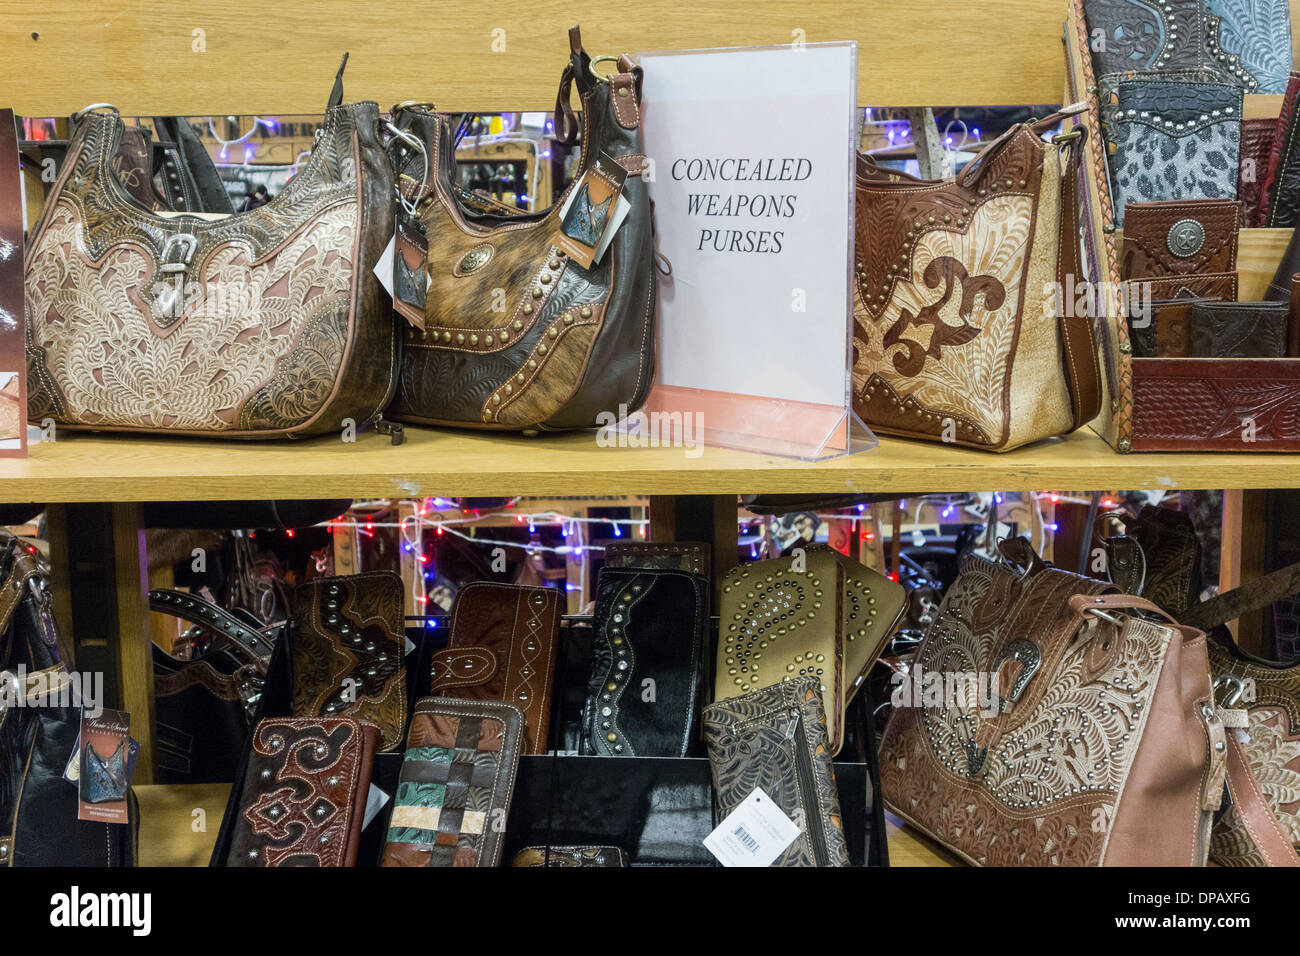 concealed weapon purses for sale, Ranch & Home store, Kennewick, Washington, USA - Stock Image